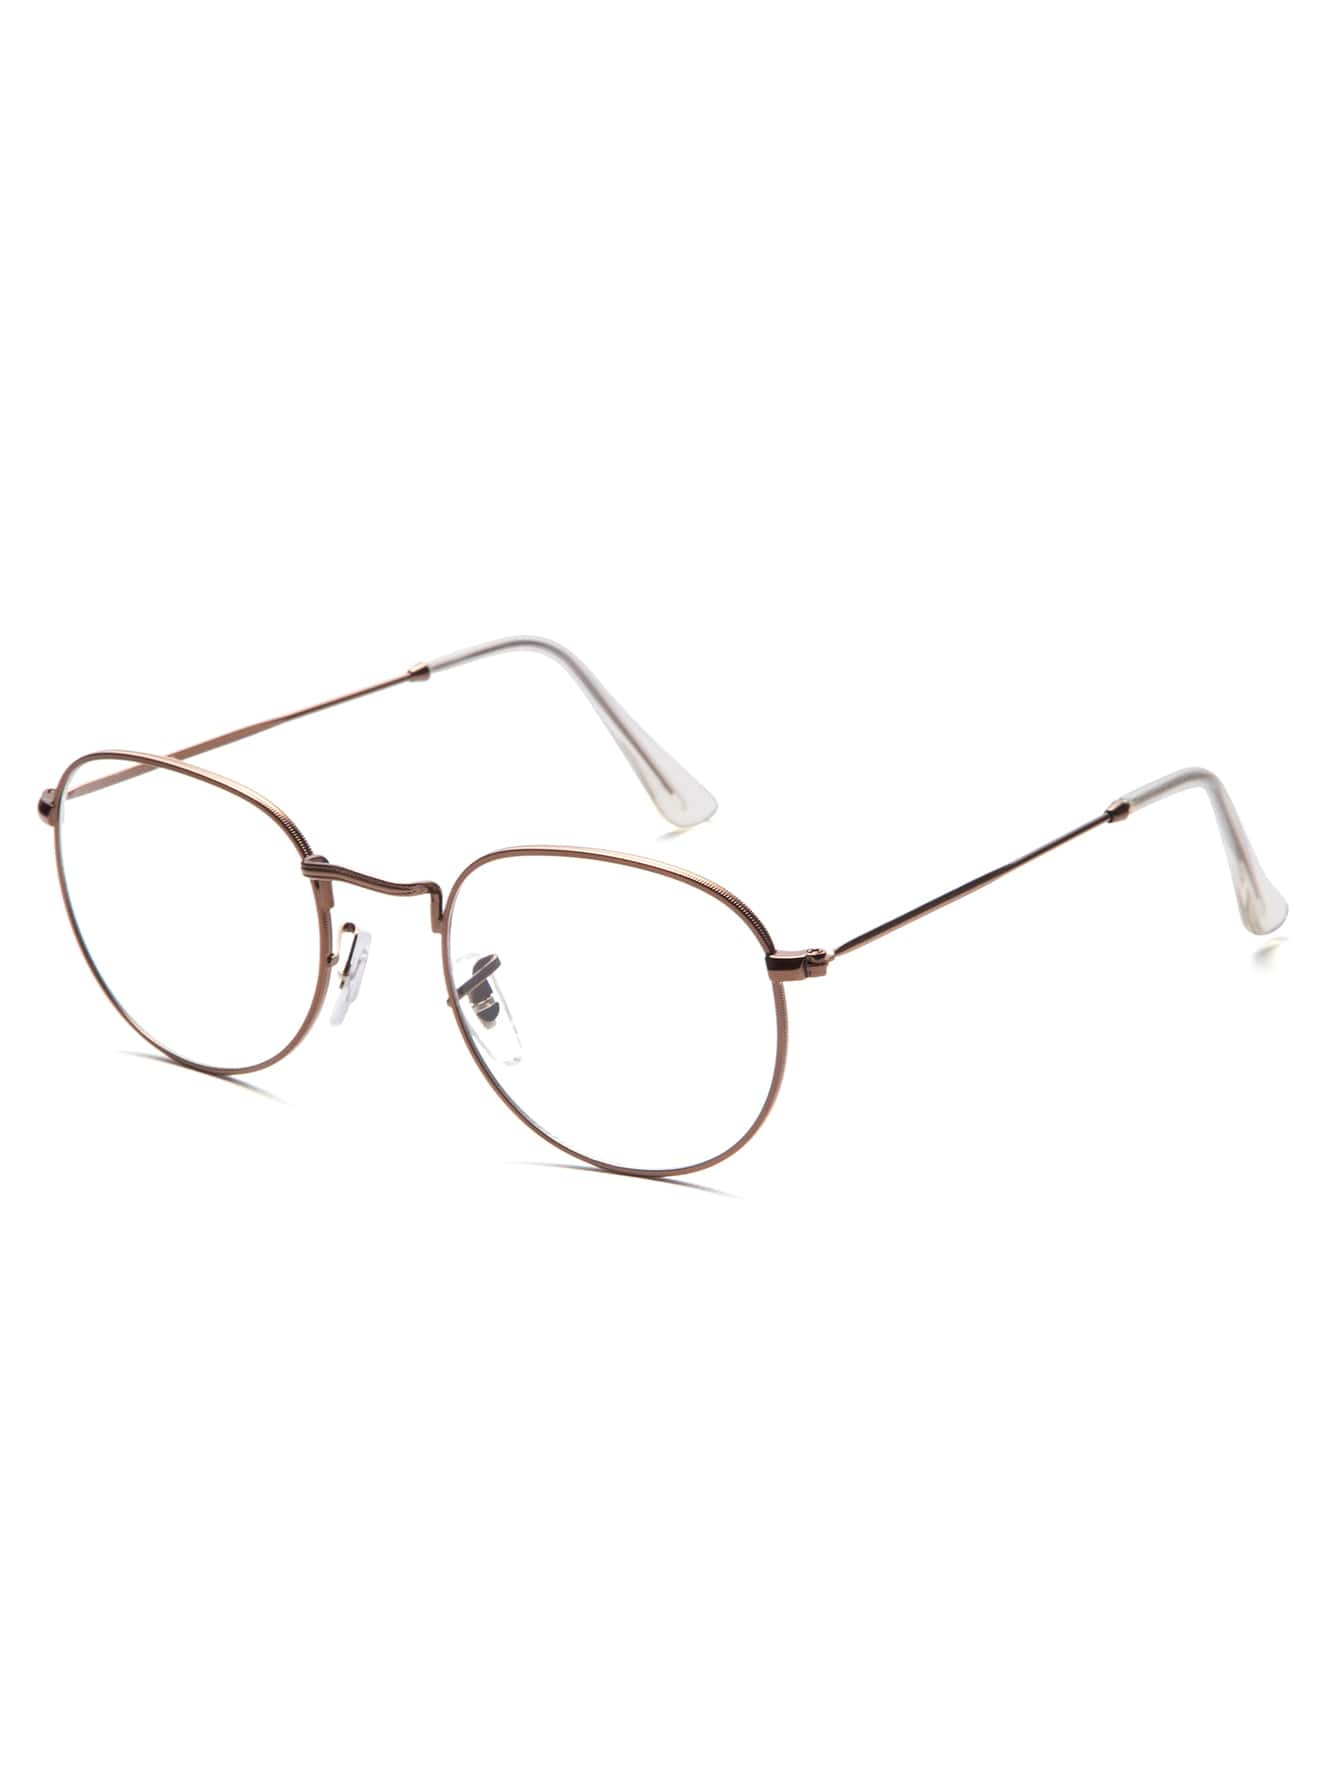 Brown Thin Frame Clear Lens Glasses EmmaCloth-Women Fast Fashion Online